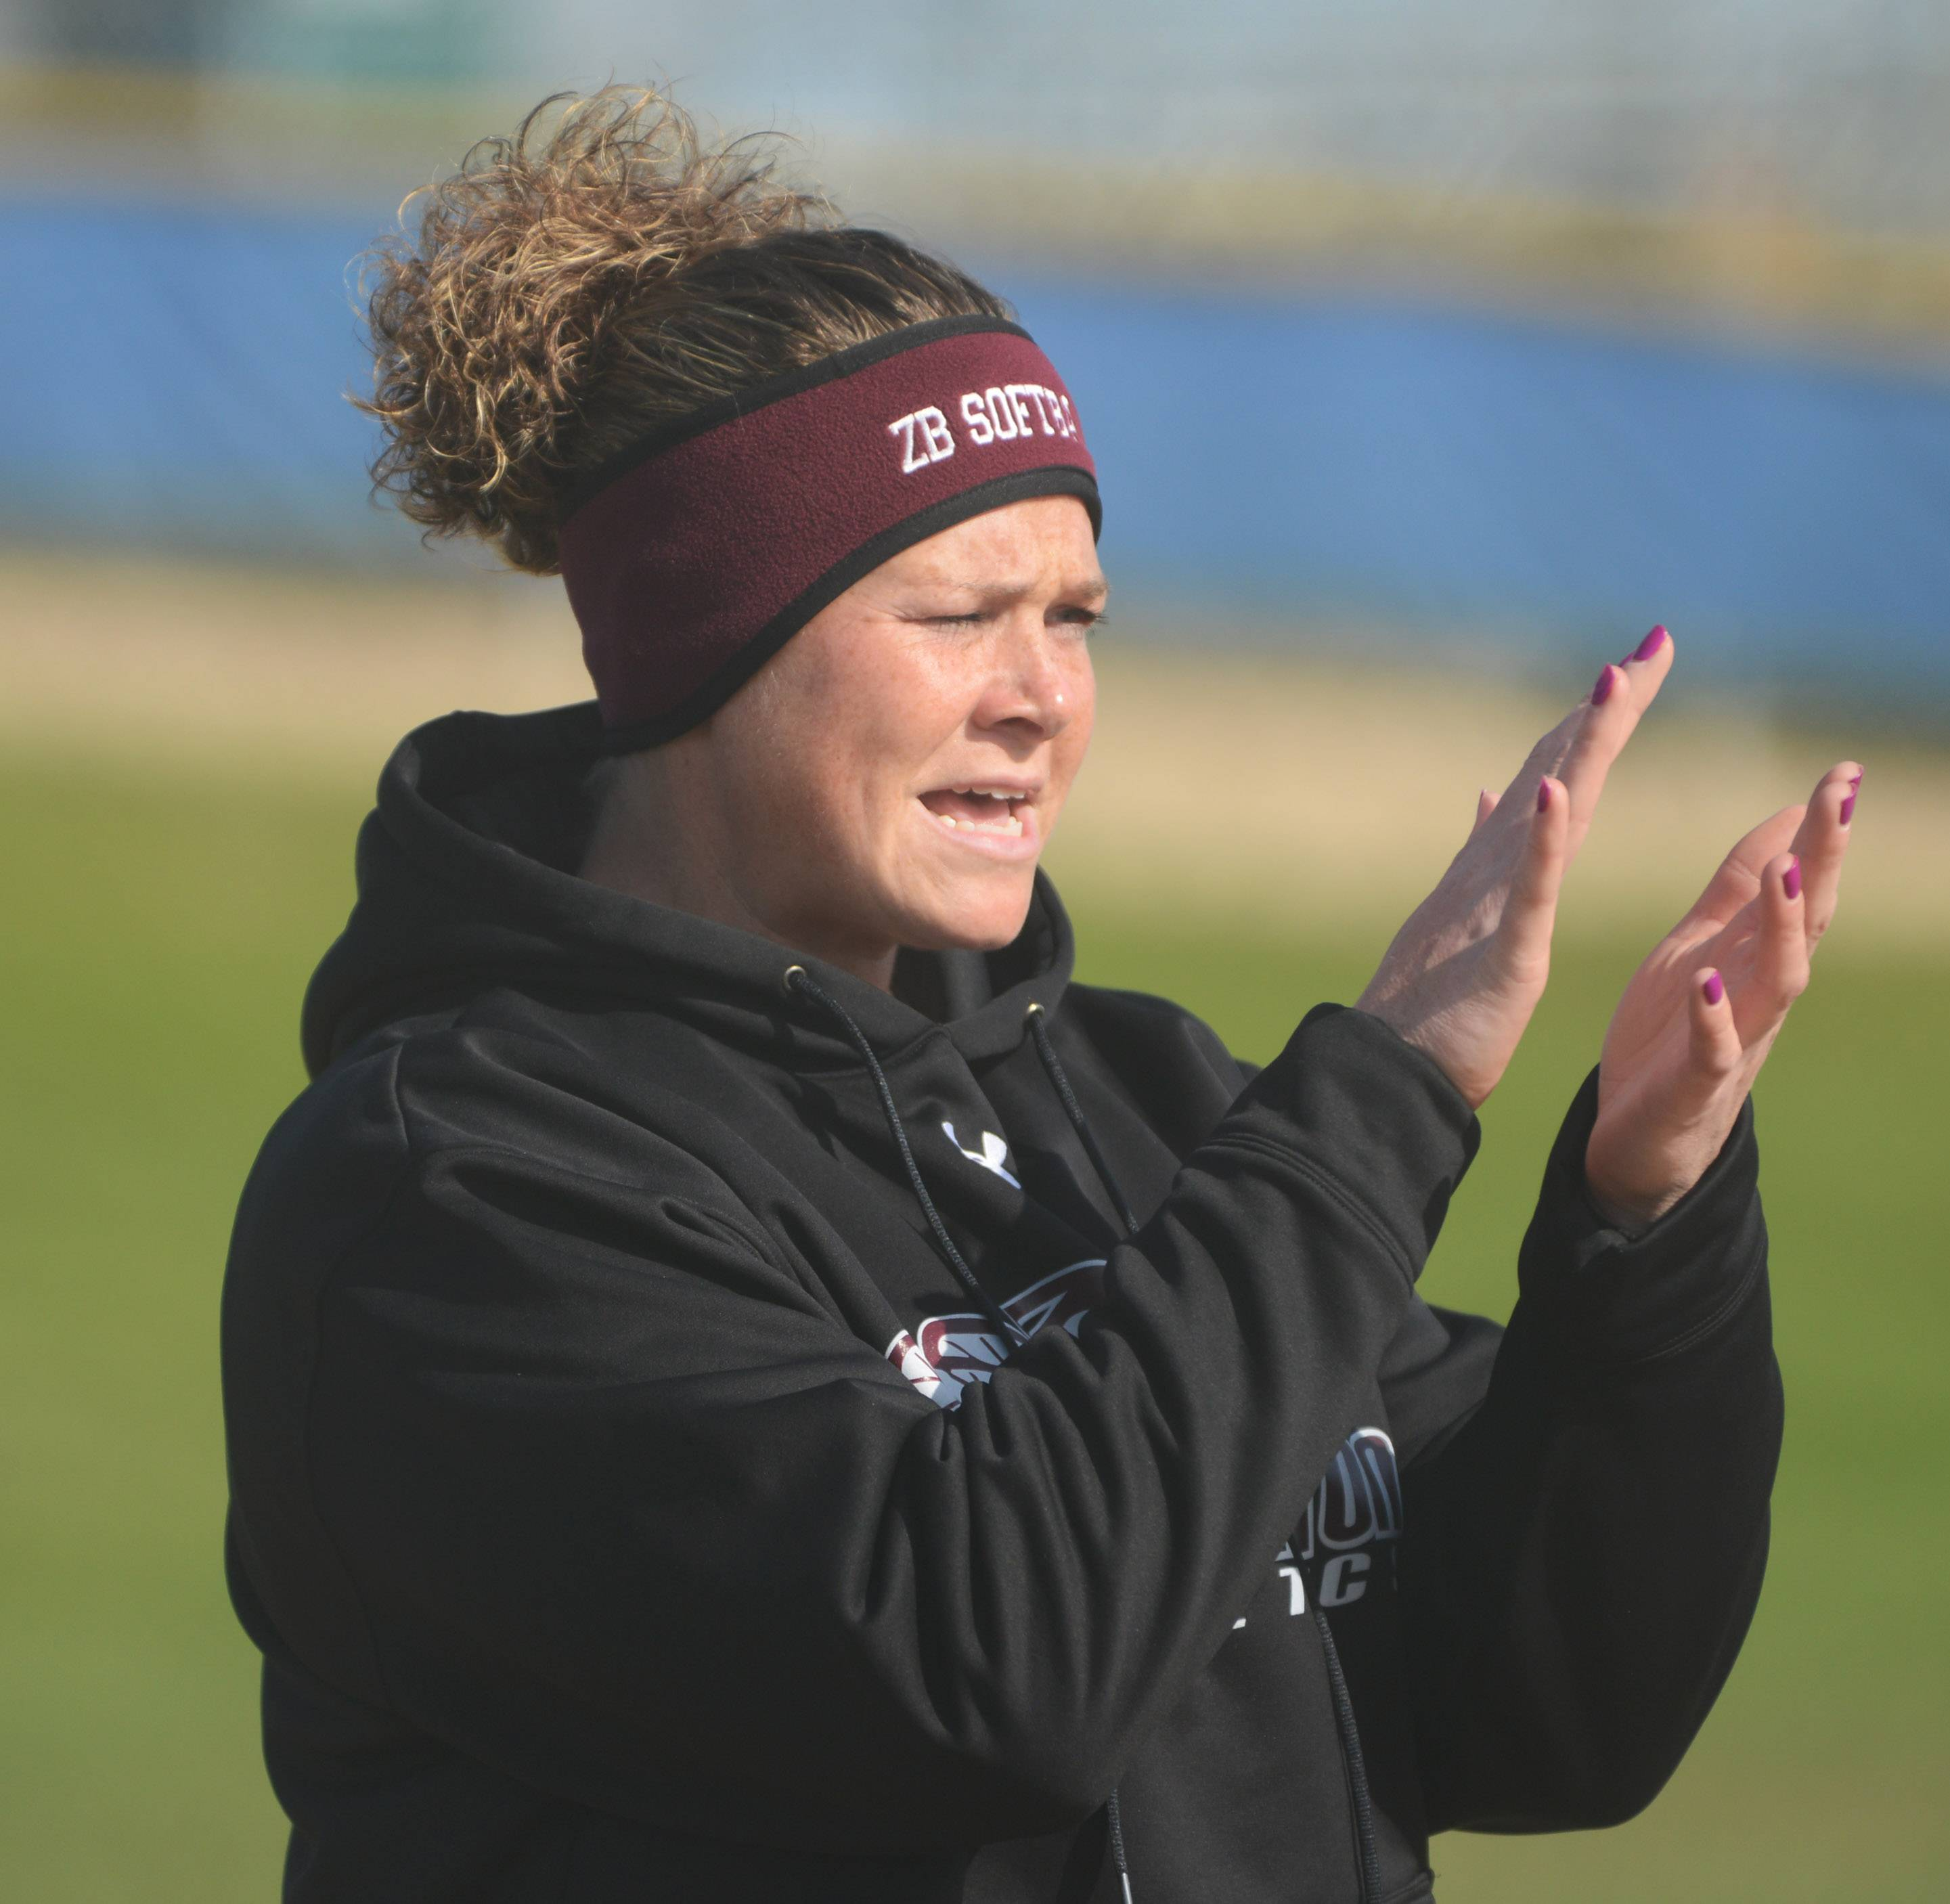 Zion-Benton coach Tina Meyer during Monday's game in Lake Zurich.